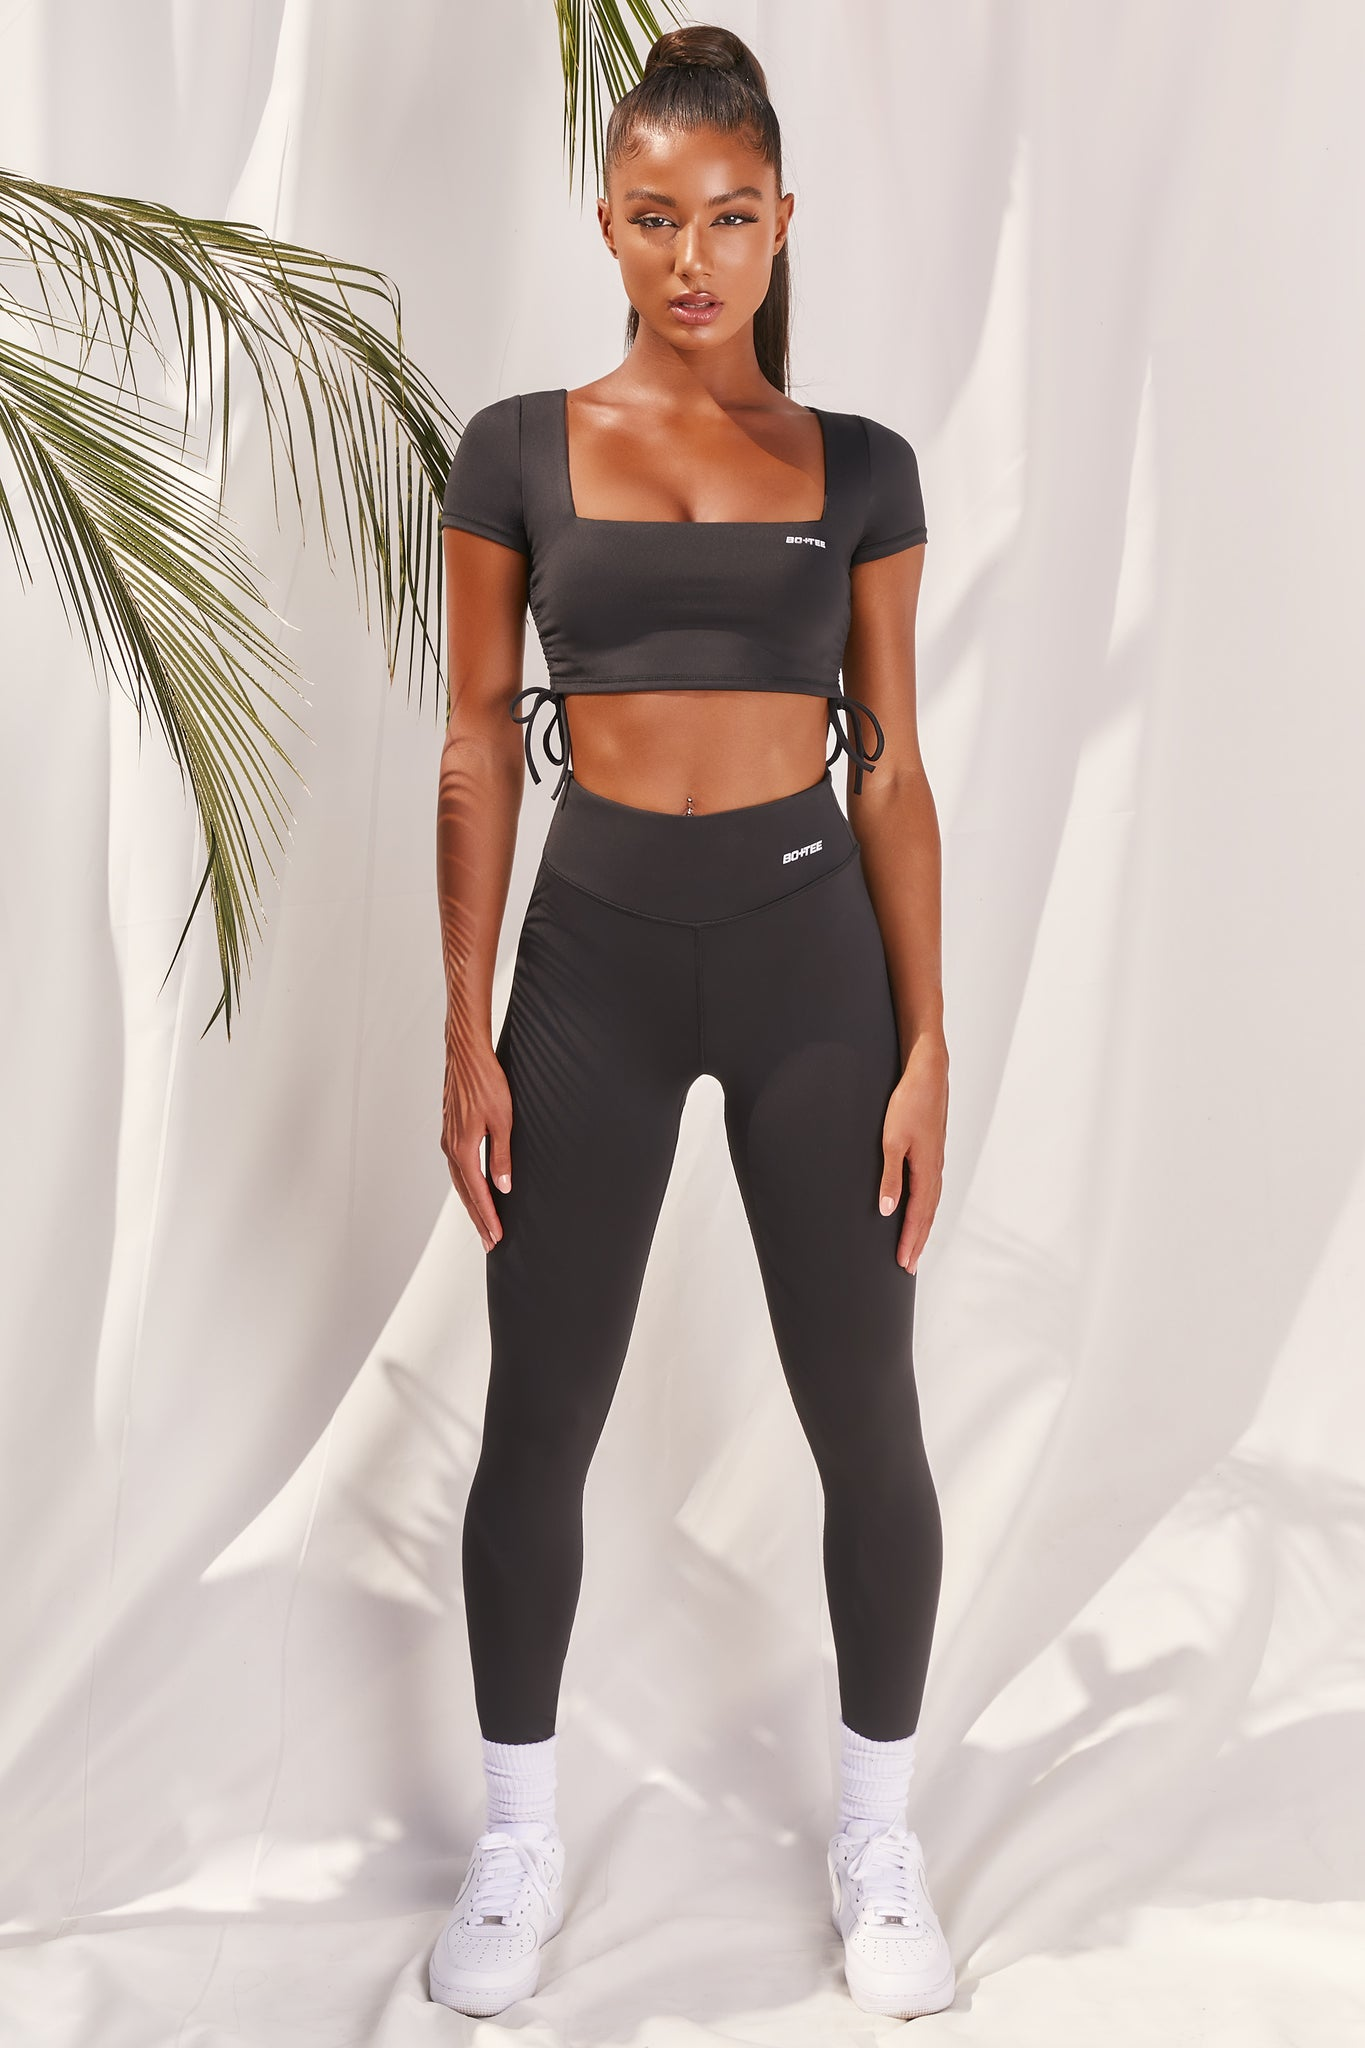 Plain black petite slinky high waisted full length gym leggings with rear ruched seam. Image 1 of 6.